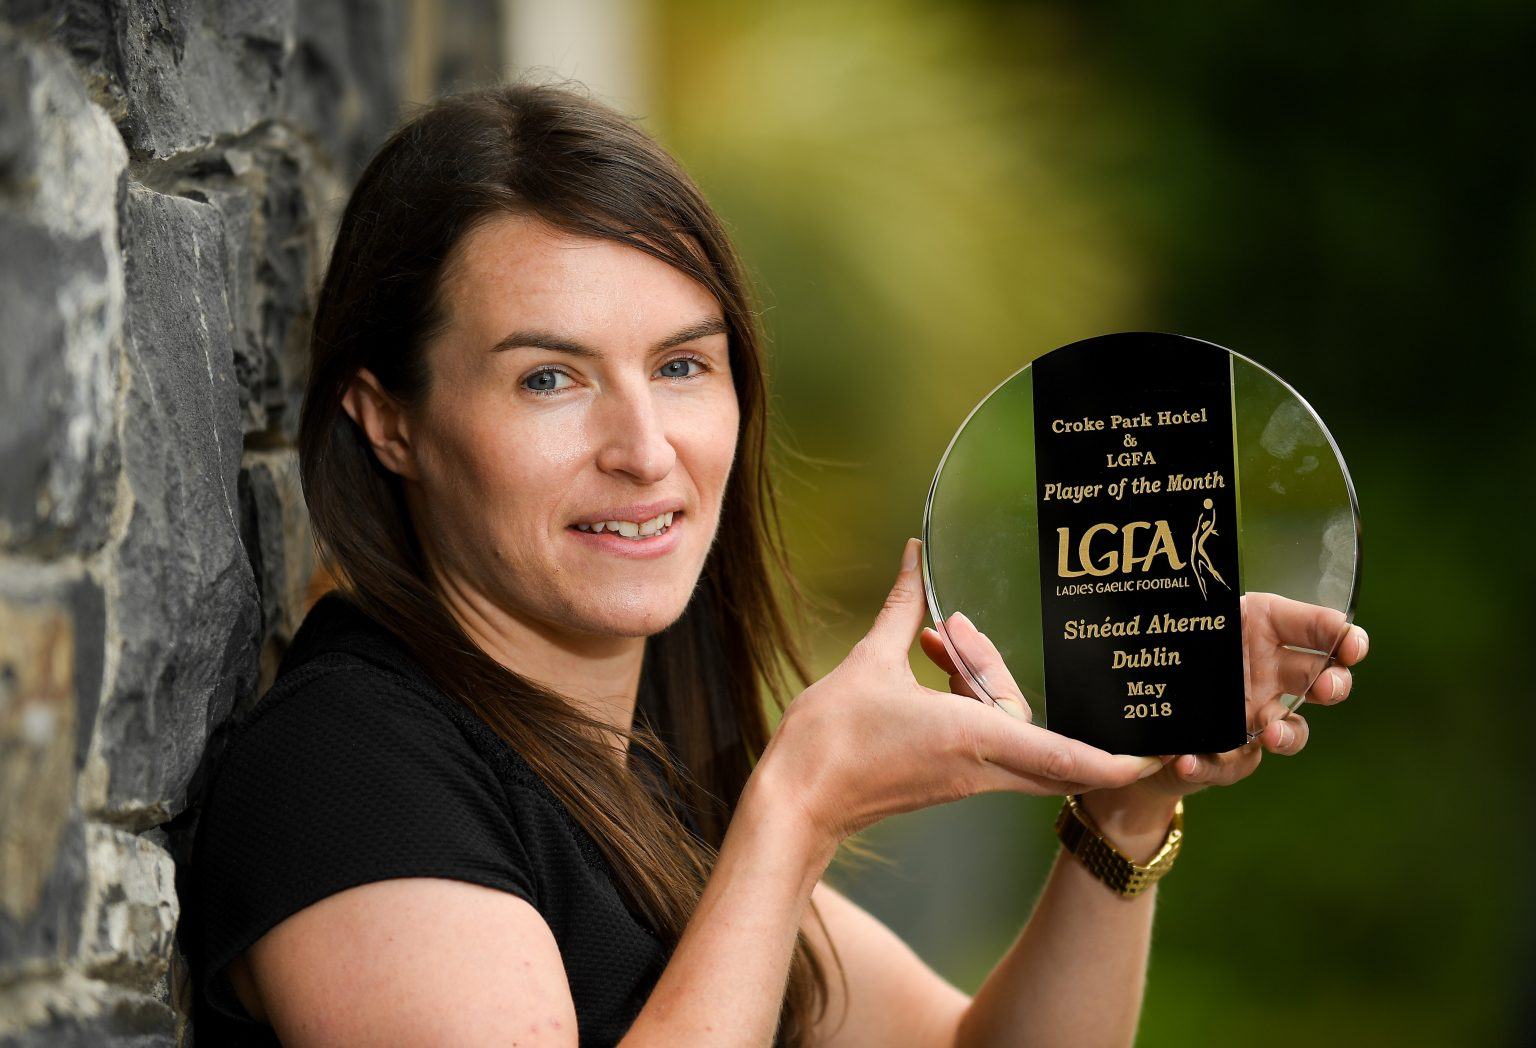 Dublin Captain Sinead Aherne in a black dress leaning against a tree trunk holding her Croke Park Hotel/ LGFA Player Of The Month award for May